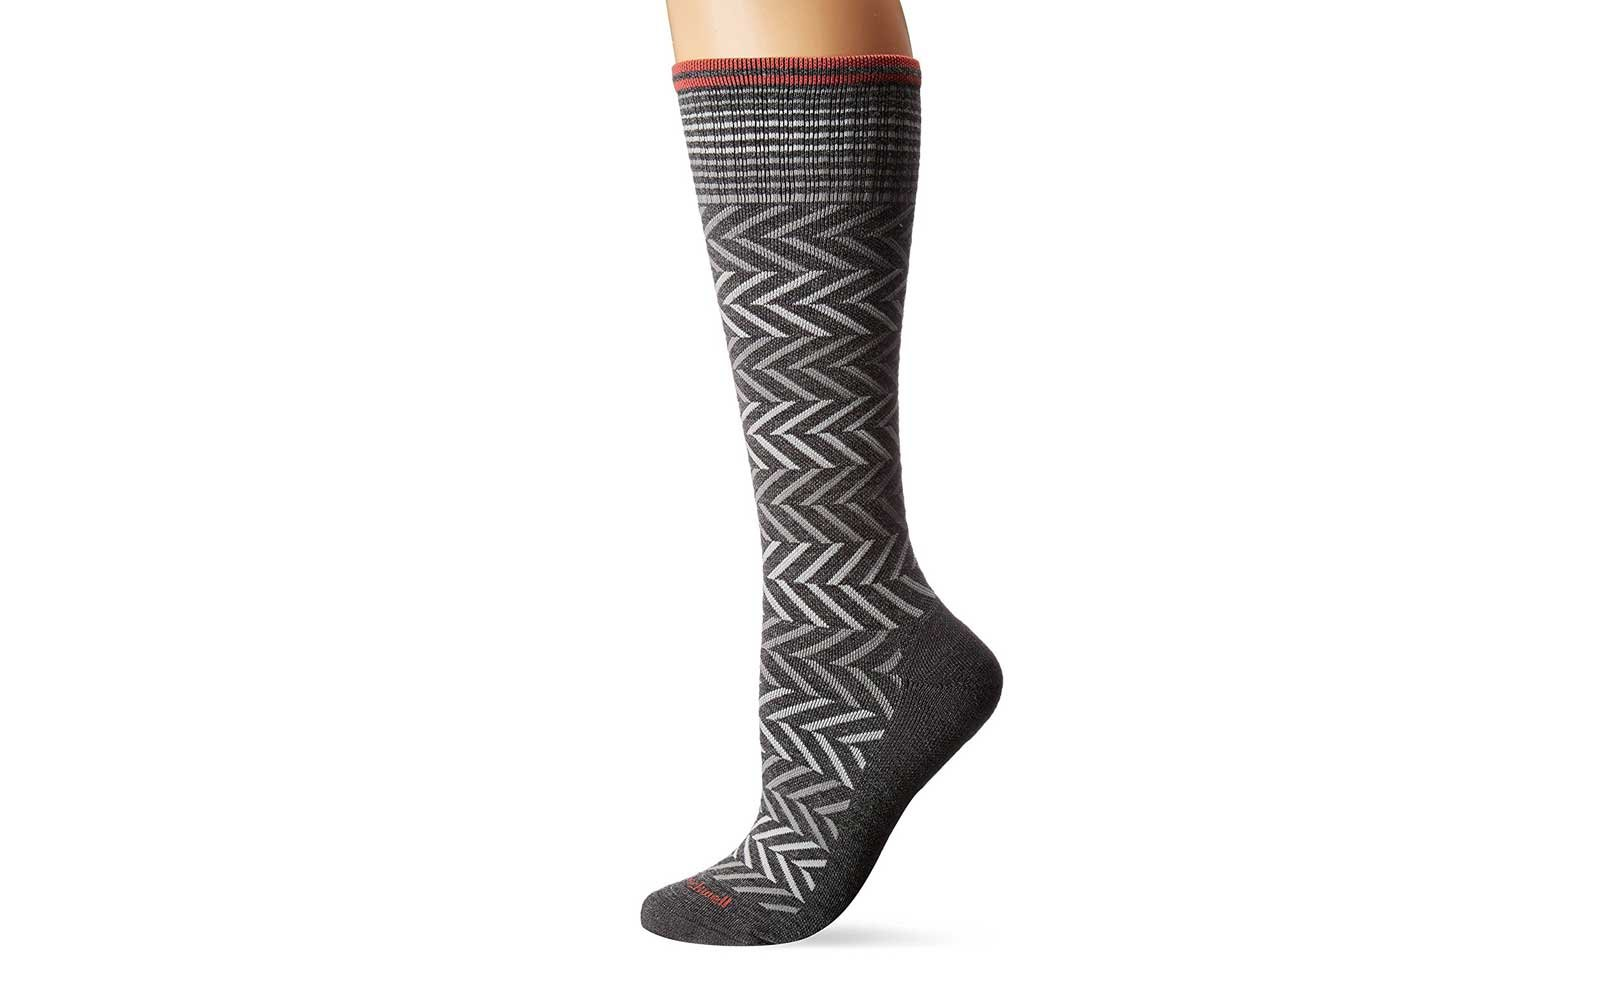 sockwell compression socks for flying